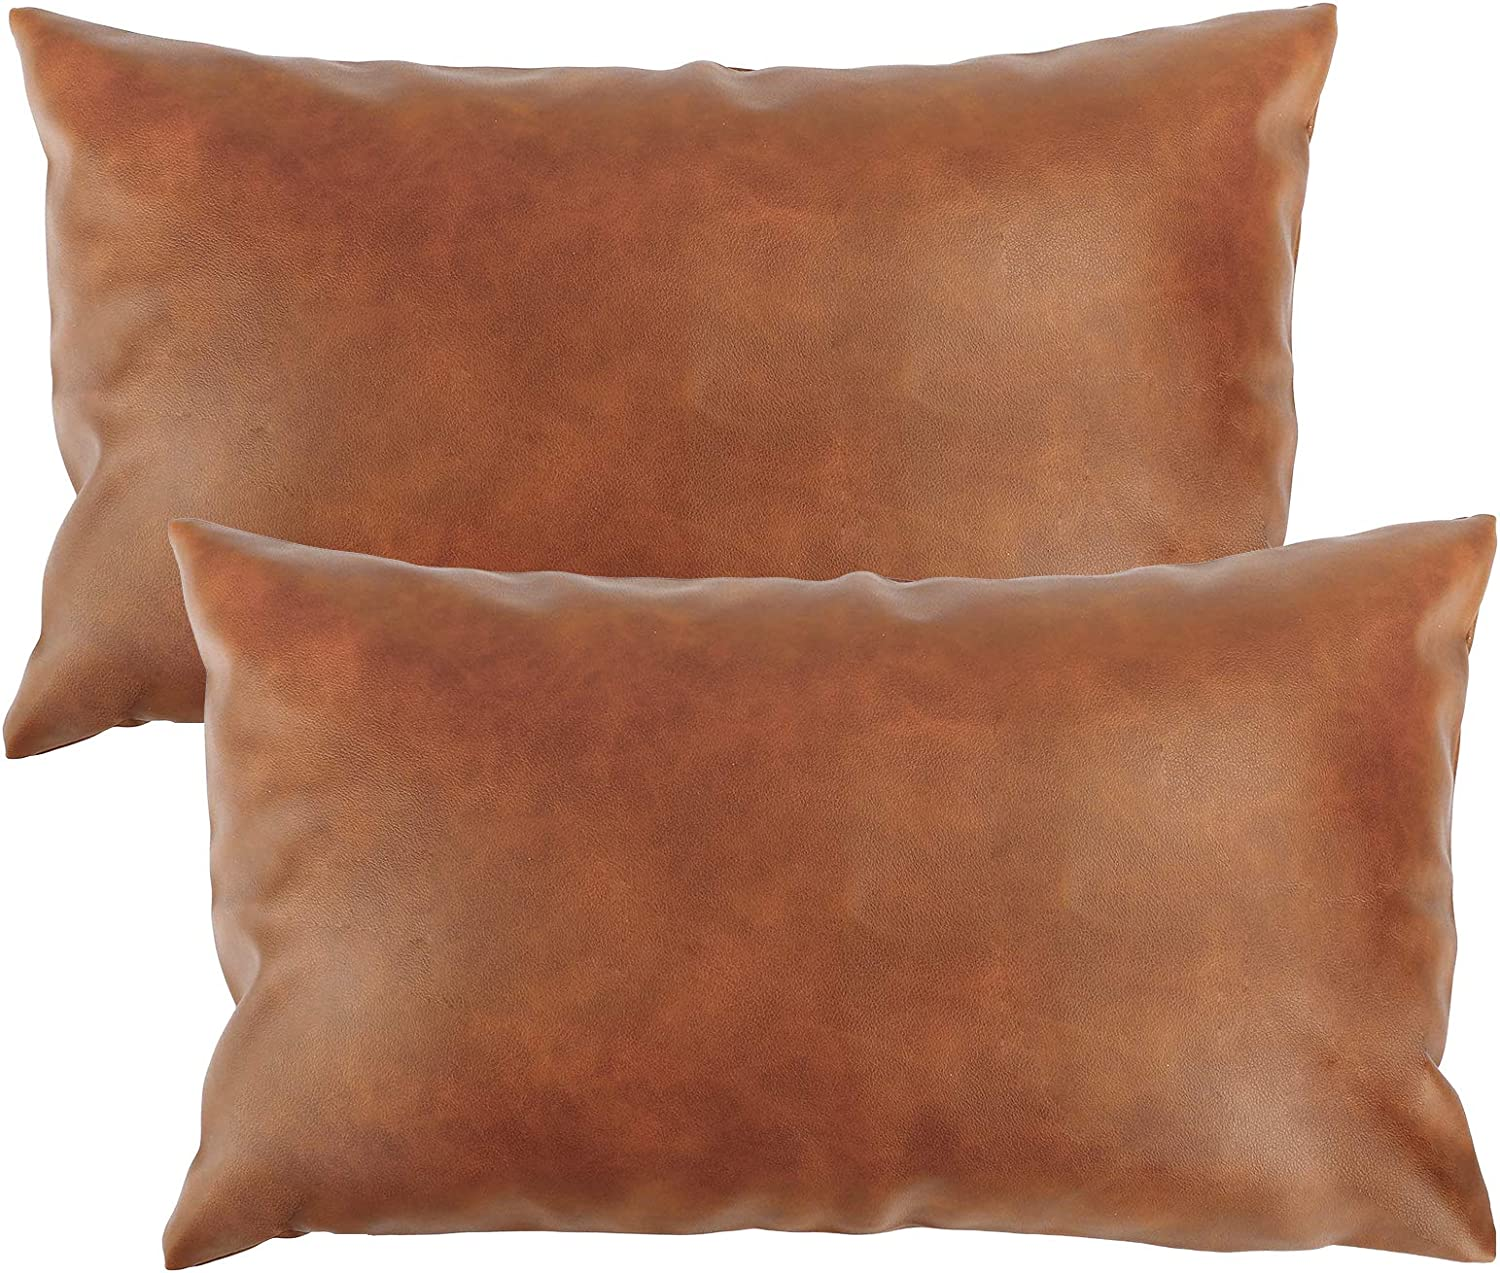 cowhide pillow patchwork pillow B Genuine leather decorative leather pillow earth tone 18 X 12 LUMBAR man-cave gift